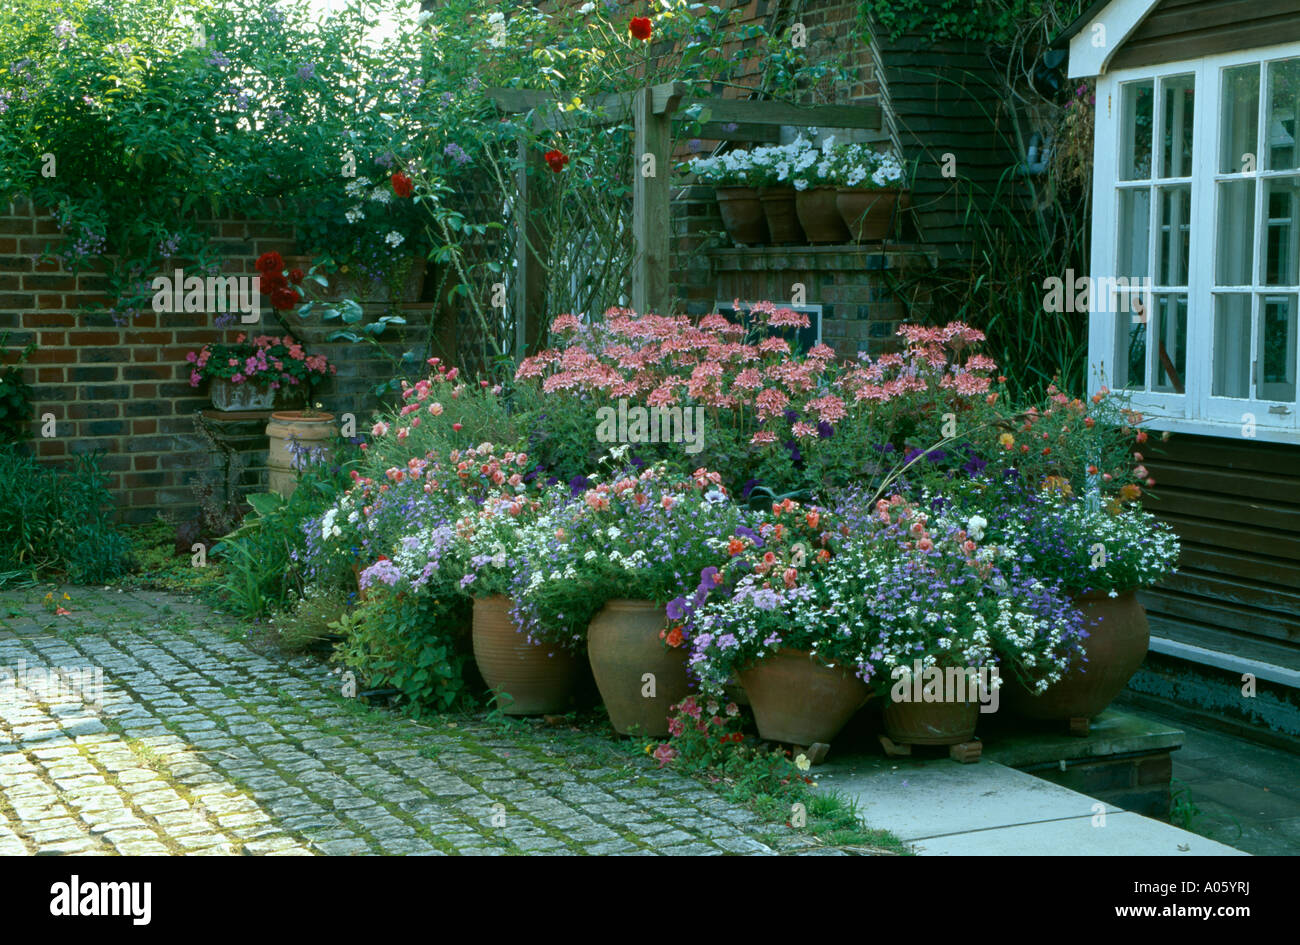 Group Of Terracotta Pots Planted With Pink Geraniums On Patio Of Country  House